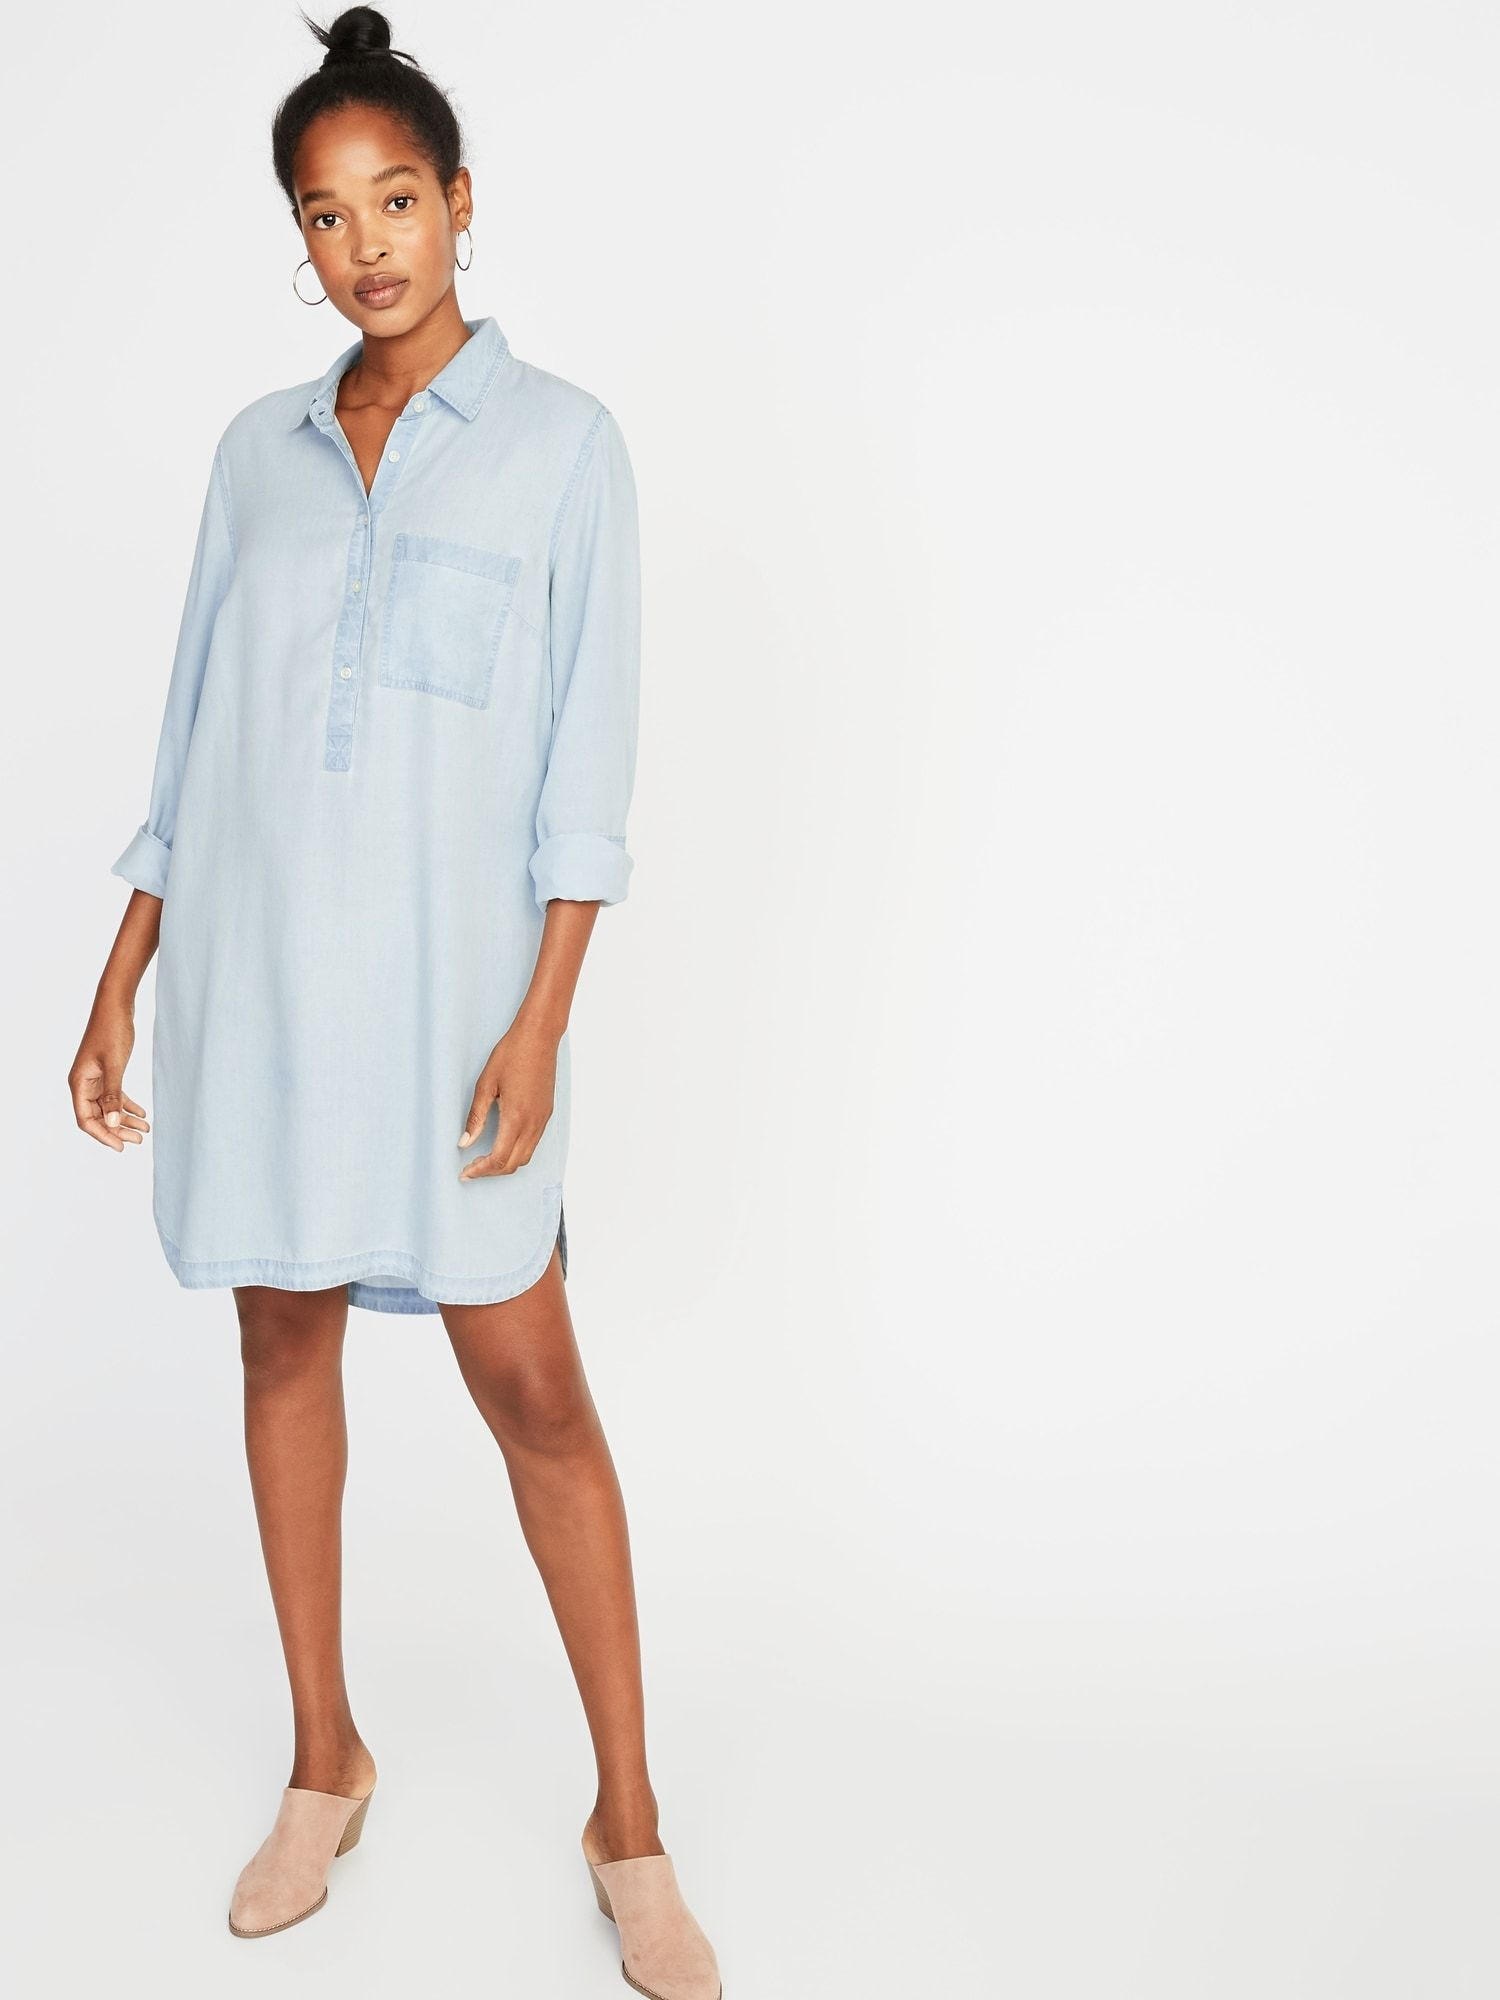 Tencel Chambray Shirt Dress For Women Old Navy Wish List In